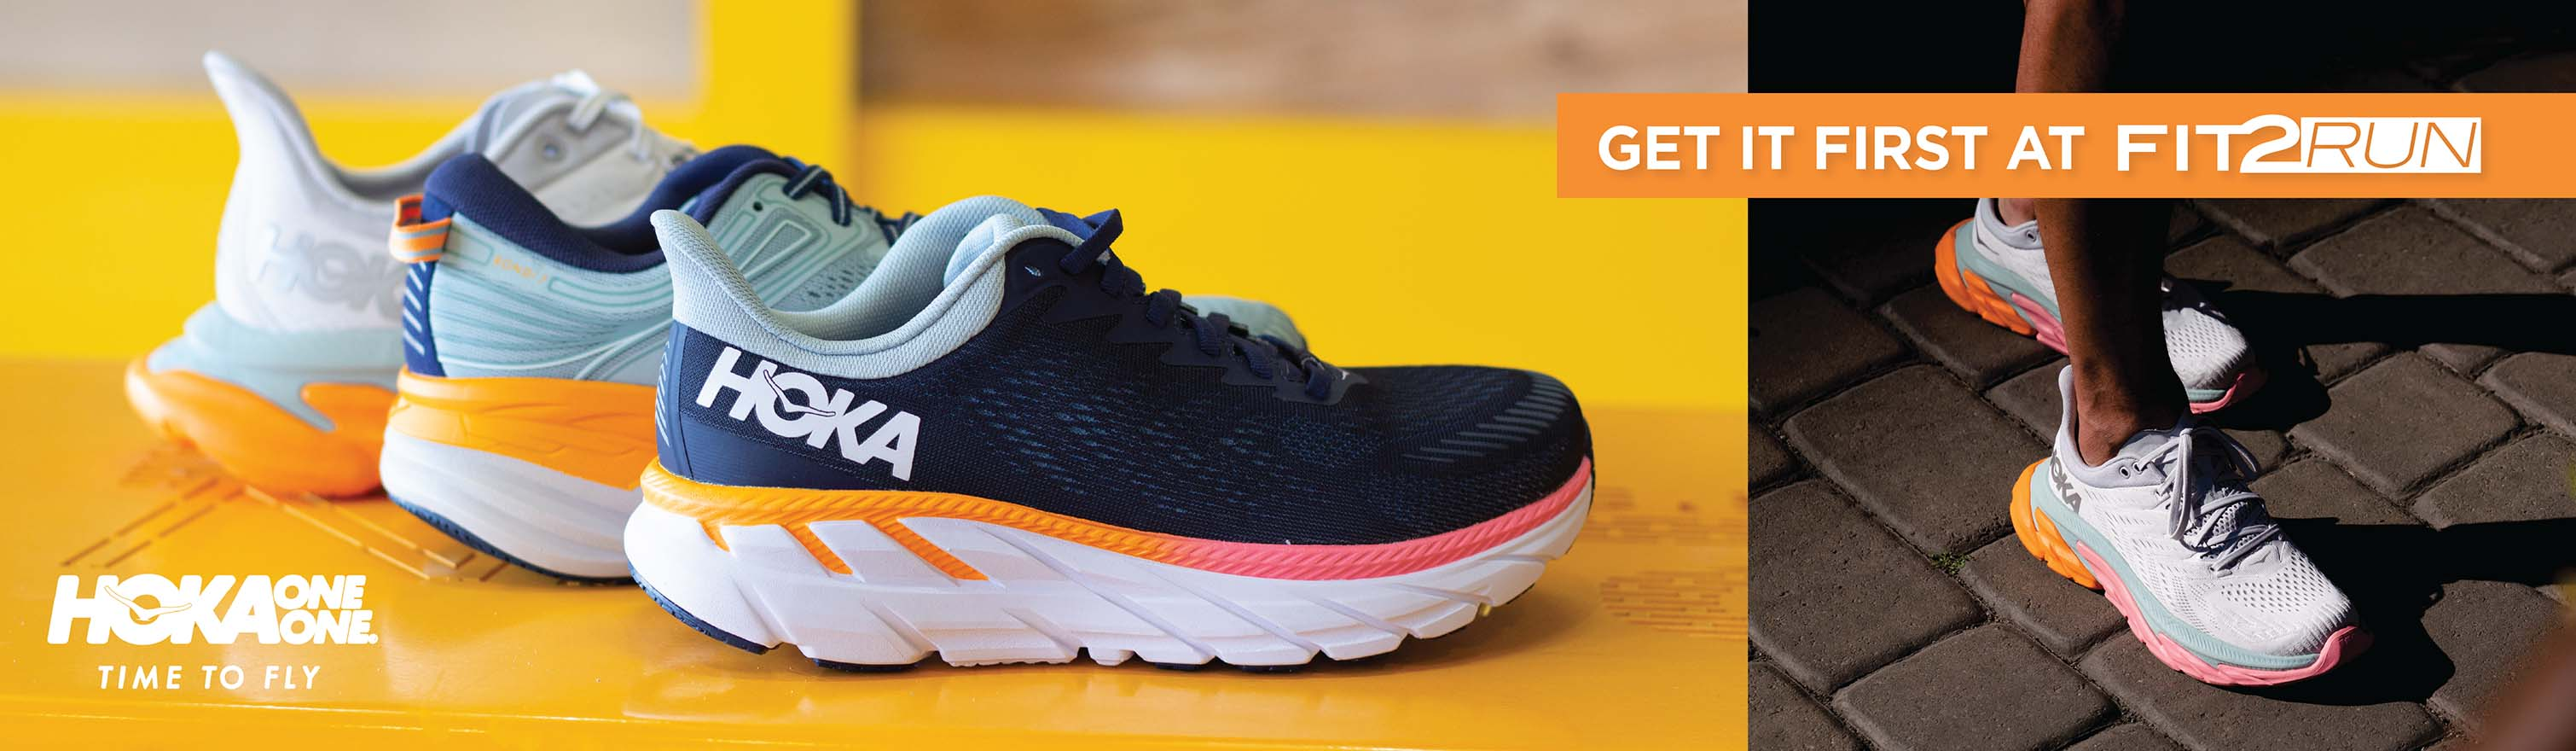 Hoka One One: Time to Fly. Shop the Hoka collection at Fit2Run